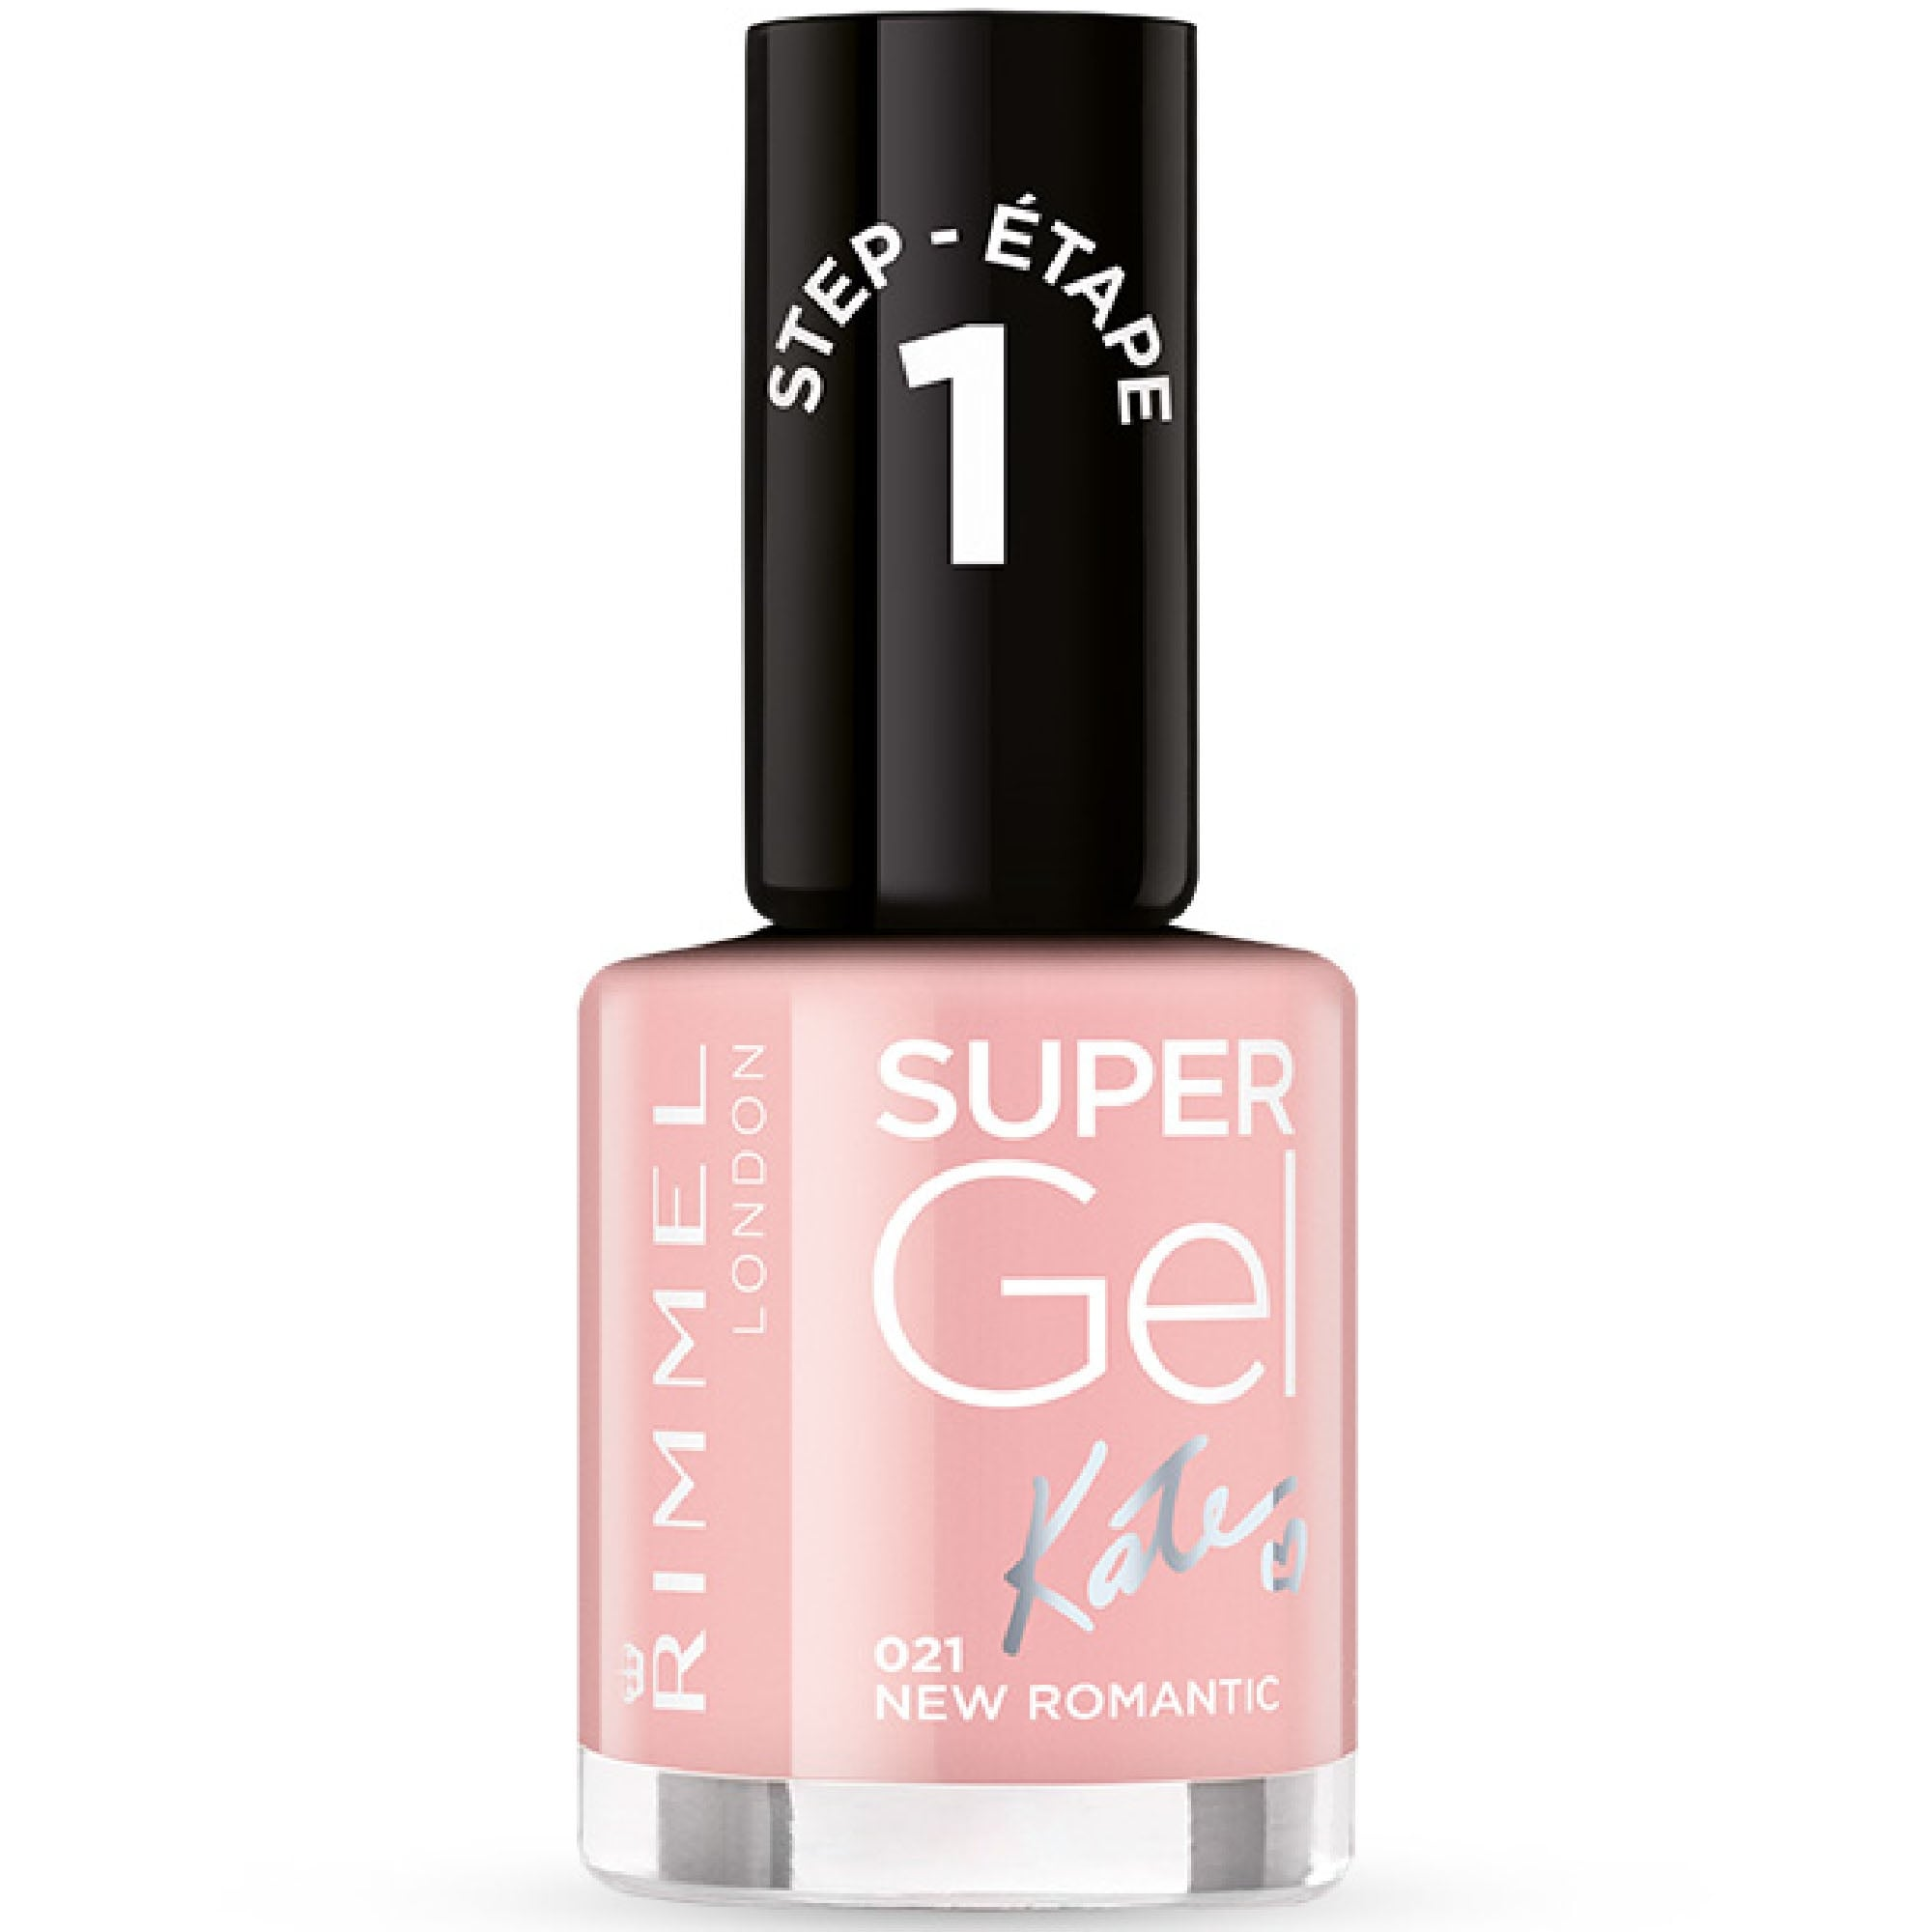 Rimmel Super Gel Colour Nail Polish - New Romantic (021) 12ml